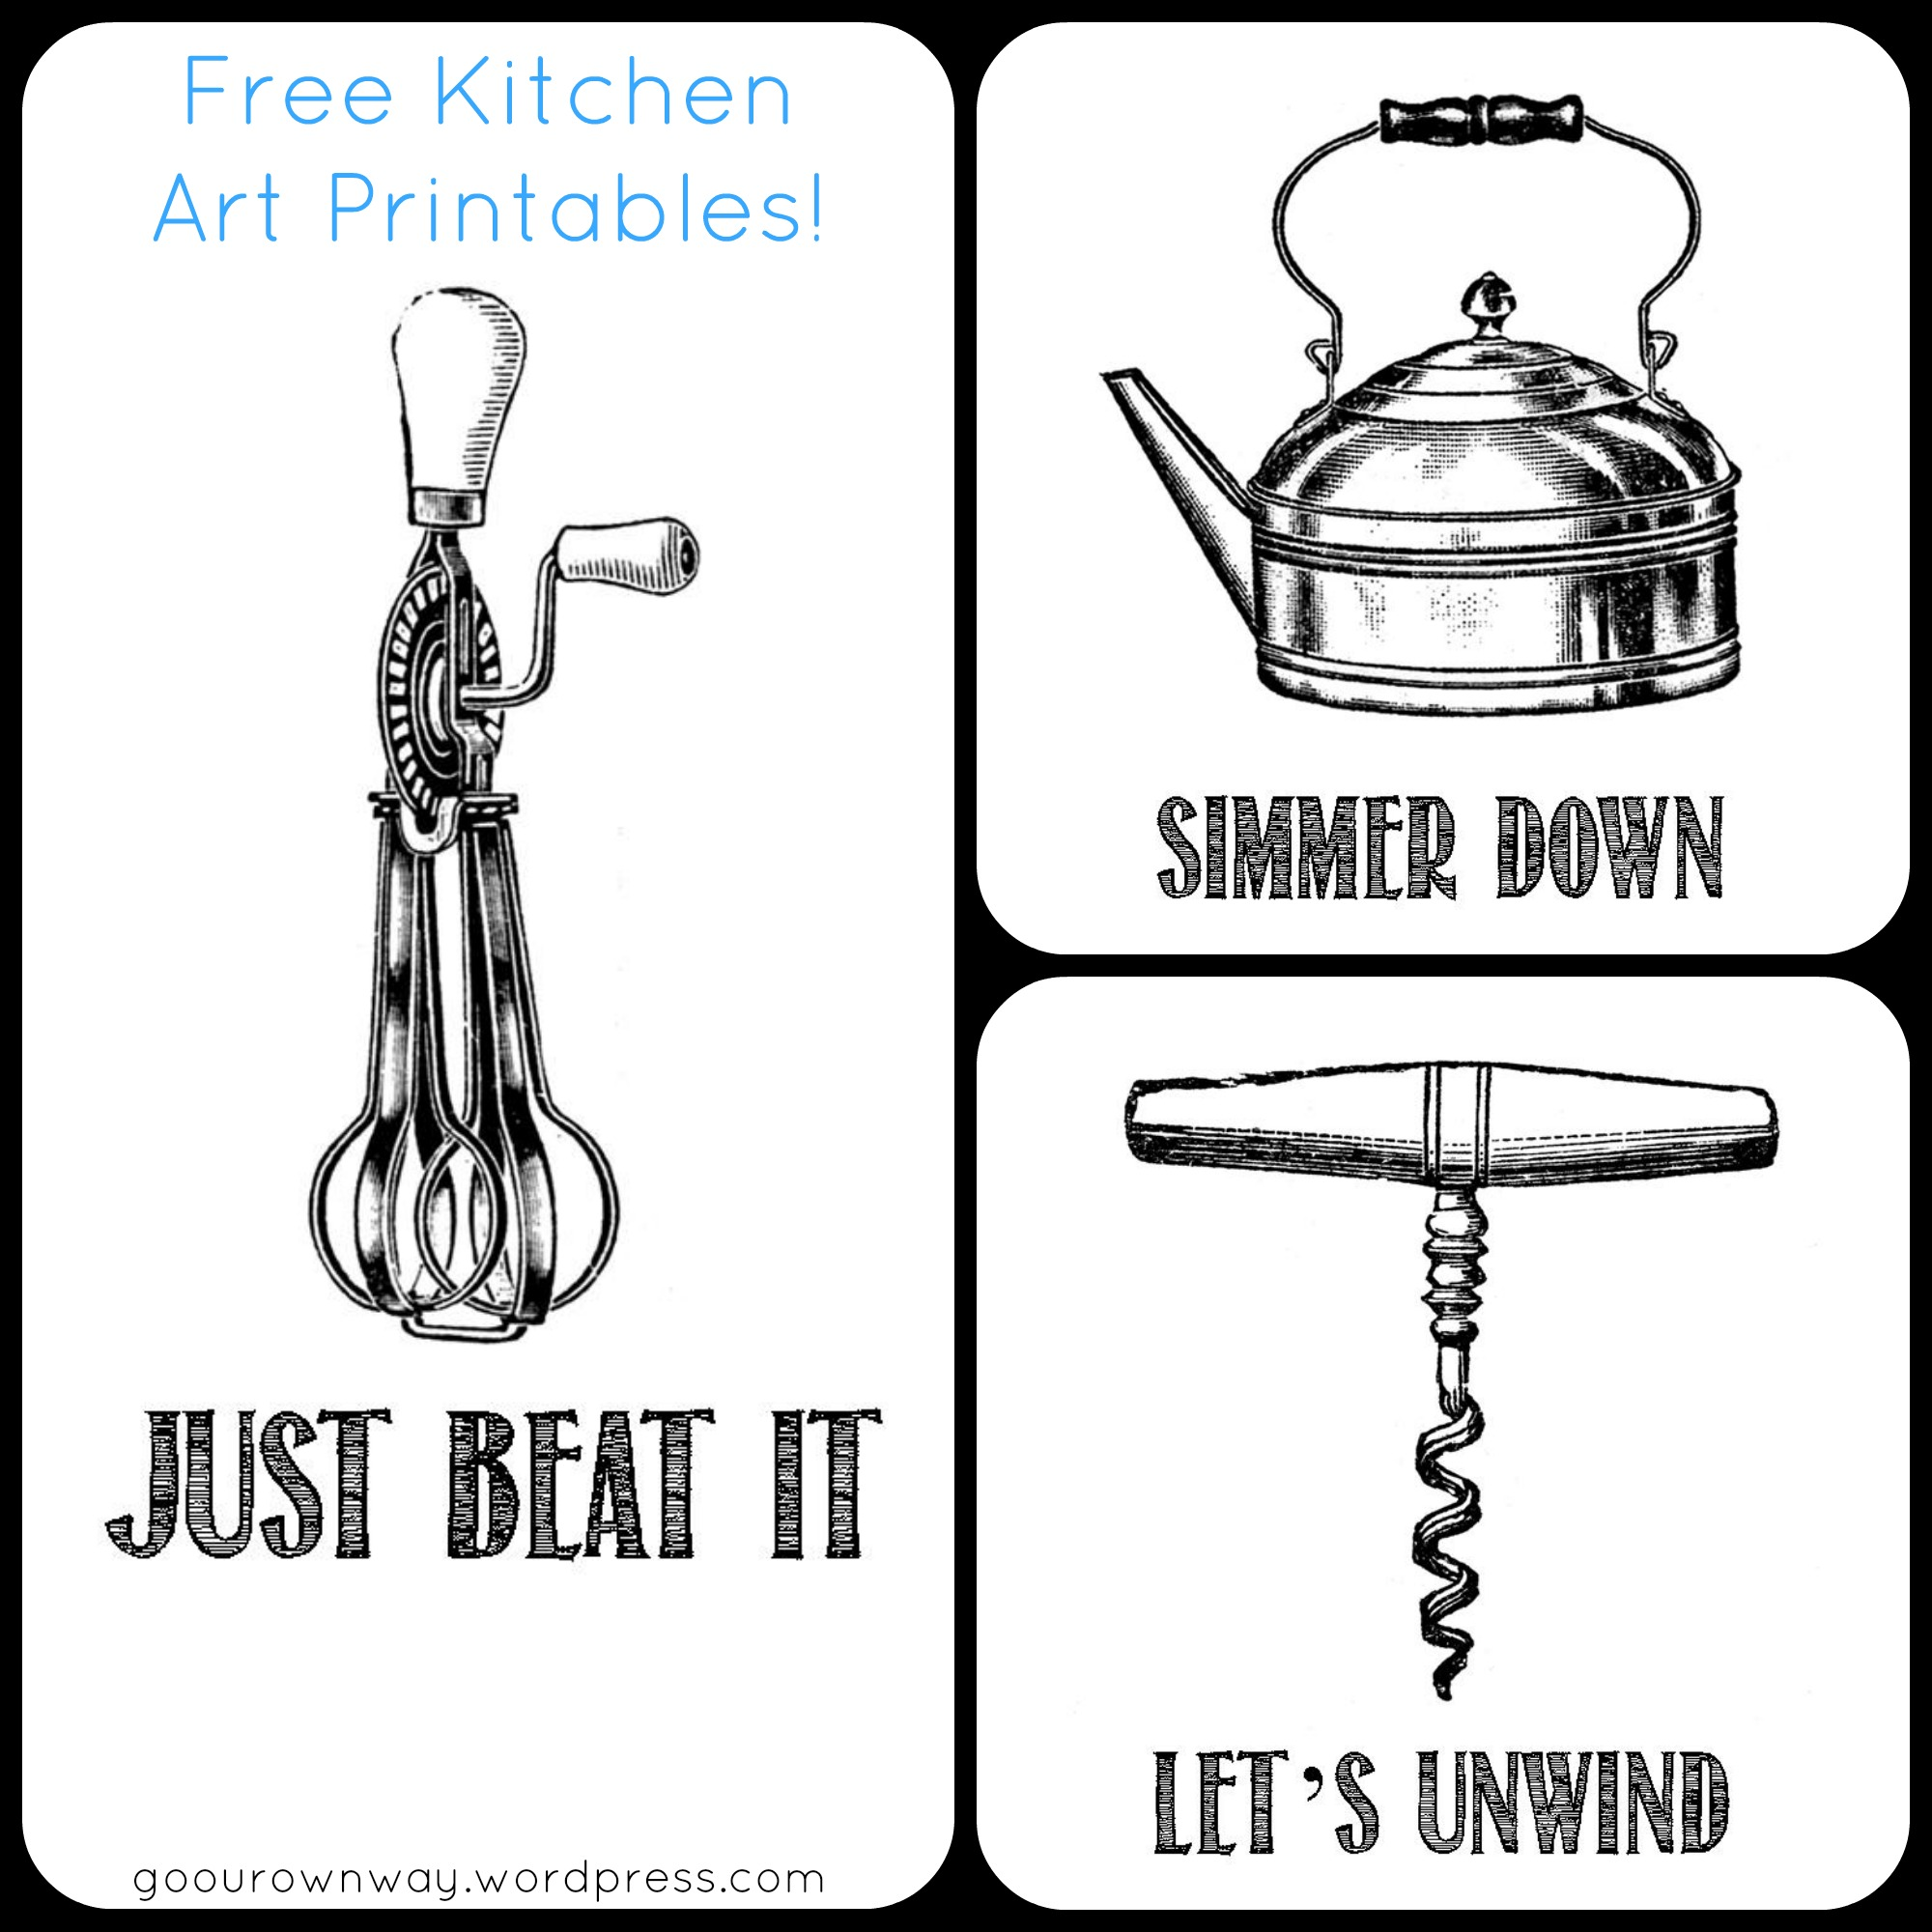 photograph regarding Free Kitchen Printables identified as Kitchen area Artwork cost-free printables! Transfer Our Individual Path